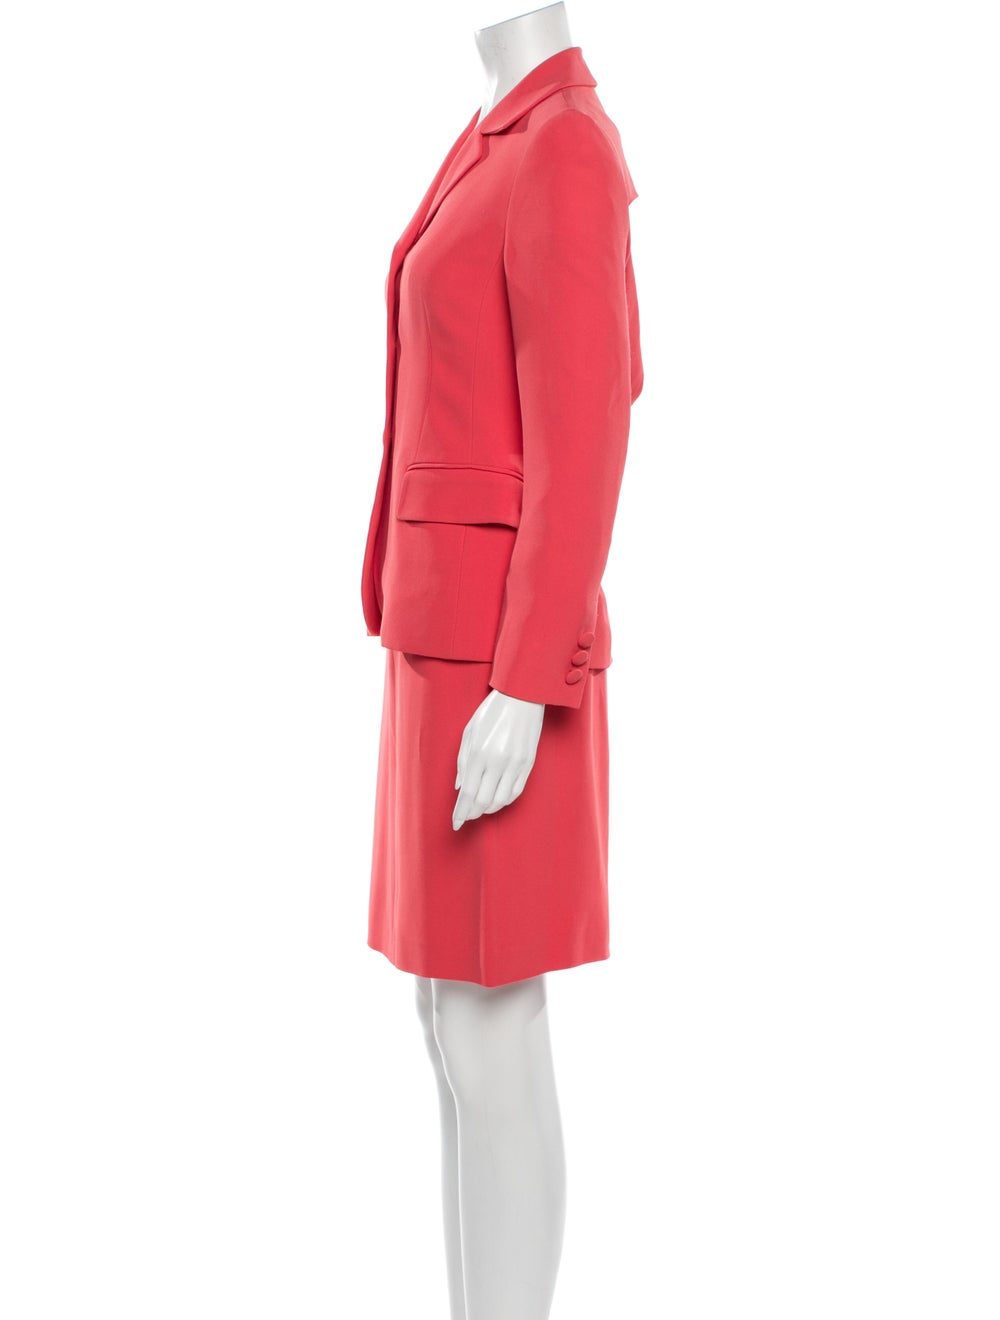 Moschino Skirt Suit Pink - image 2